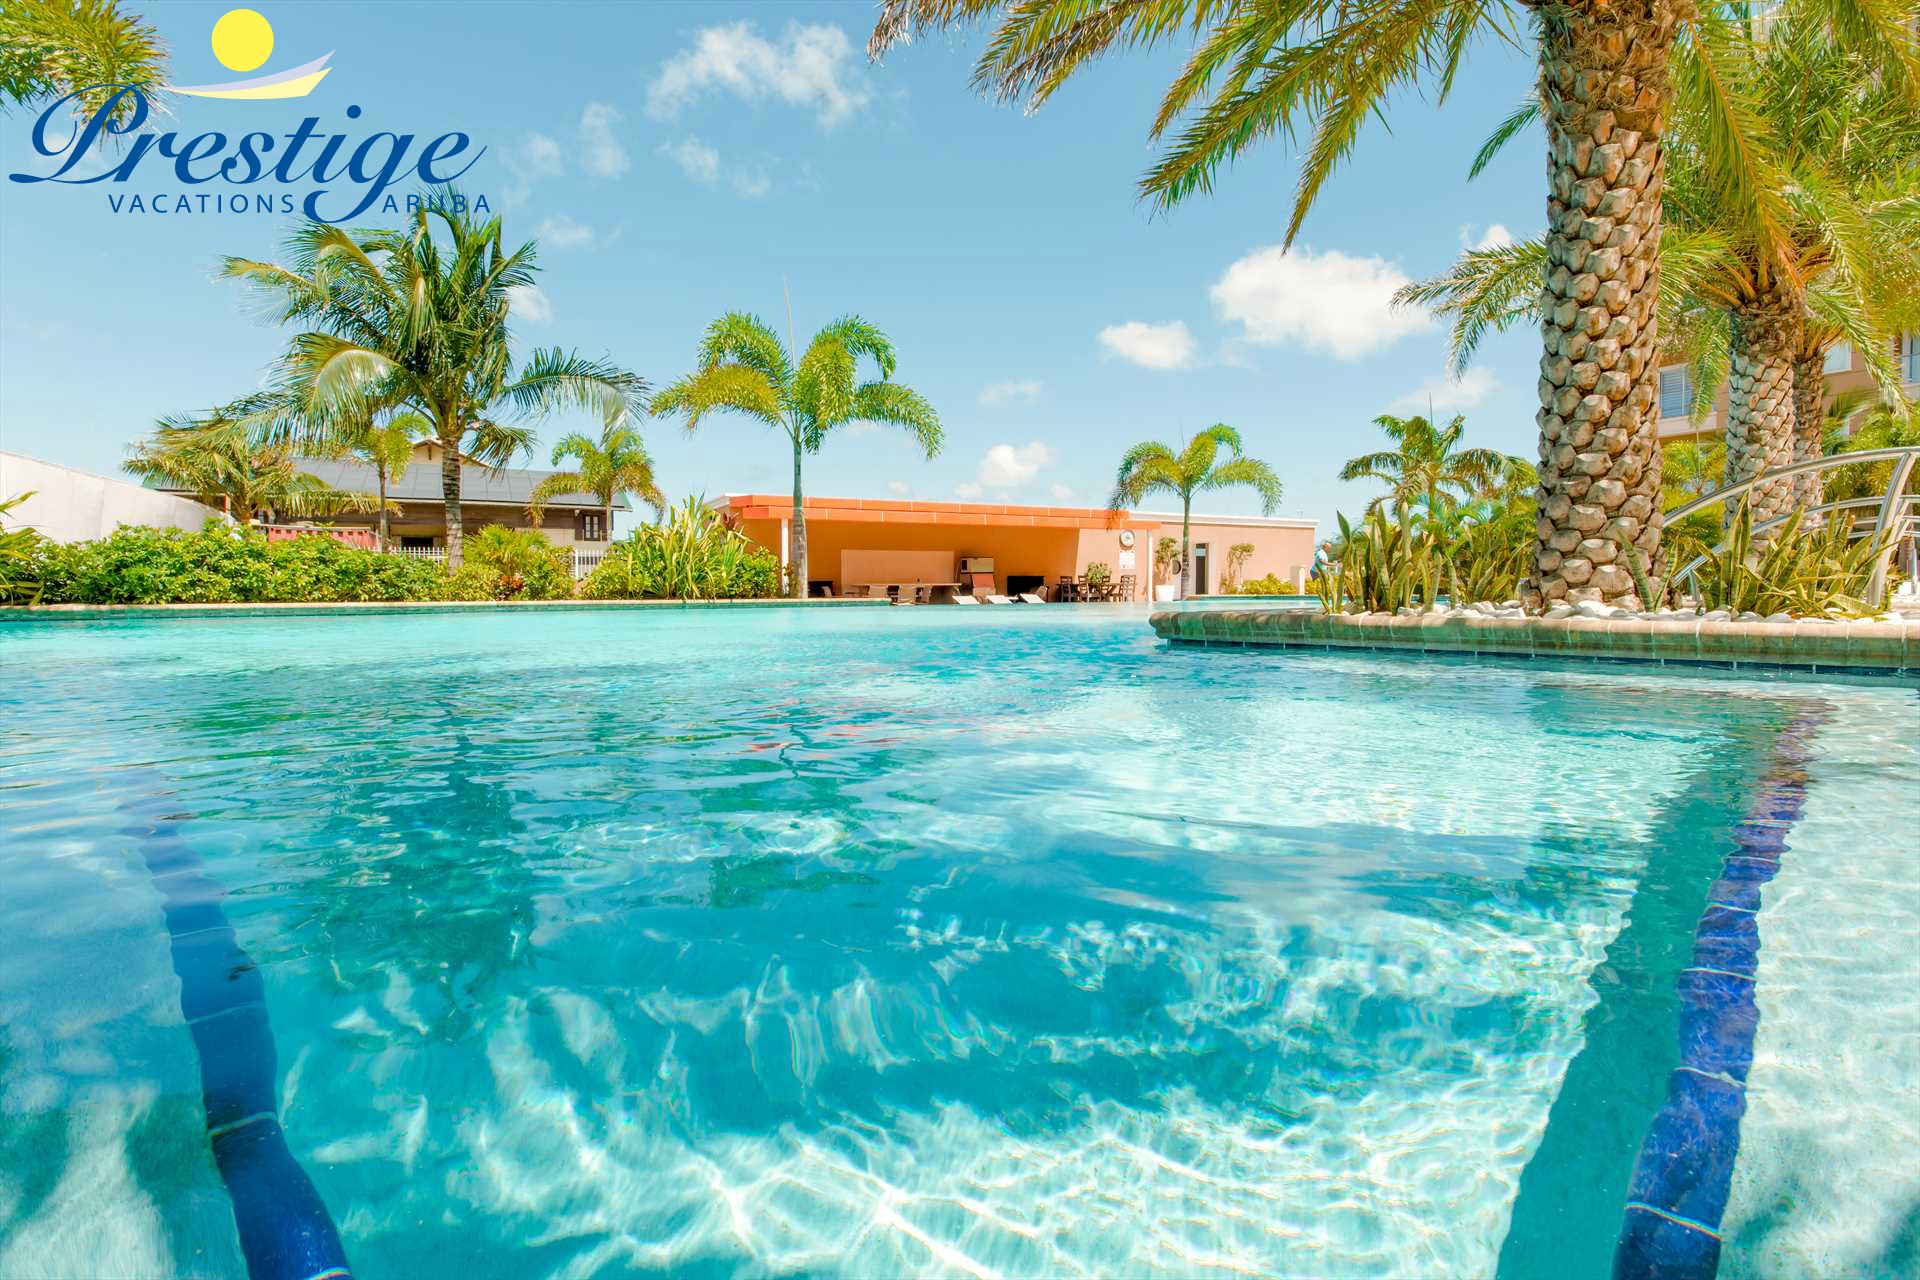 Indulge in the pool and unwind under the trees, the perfect vacation!